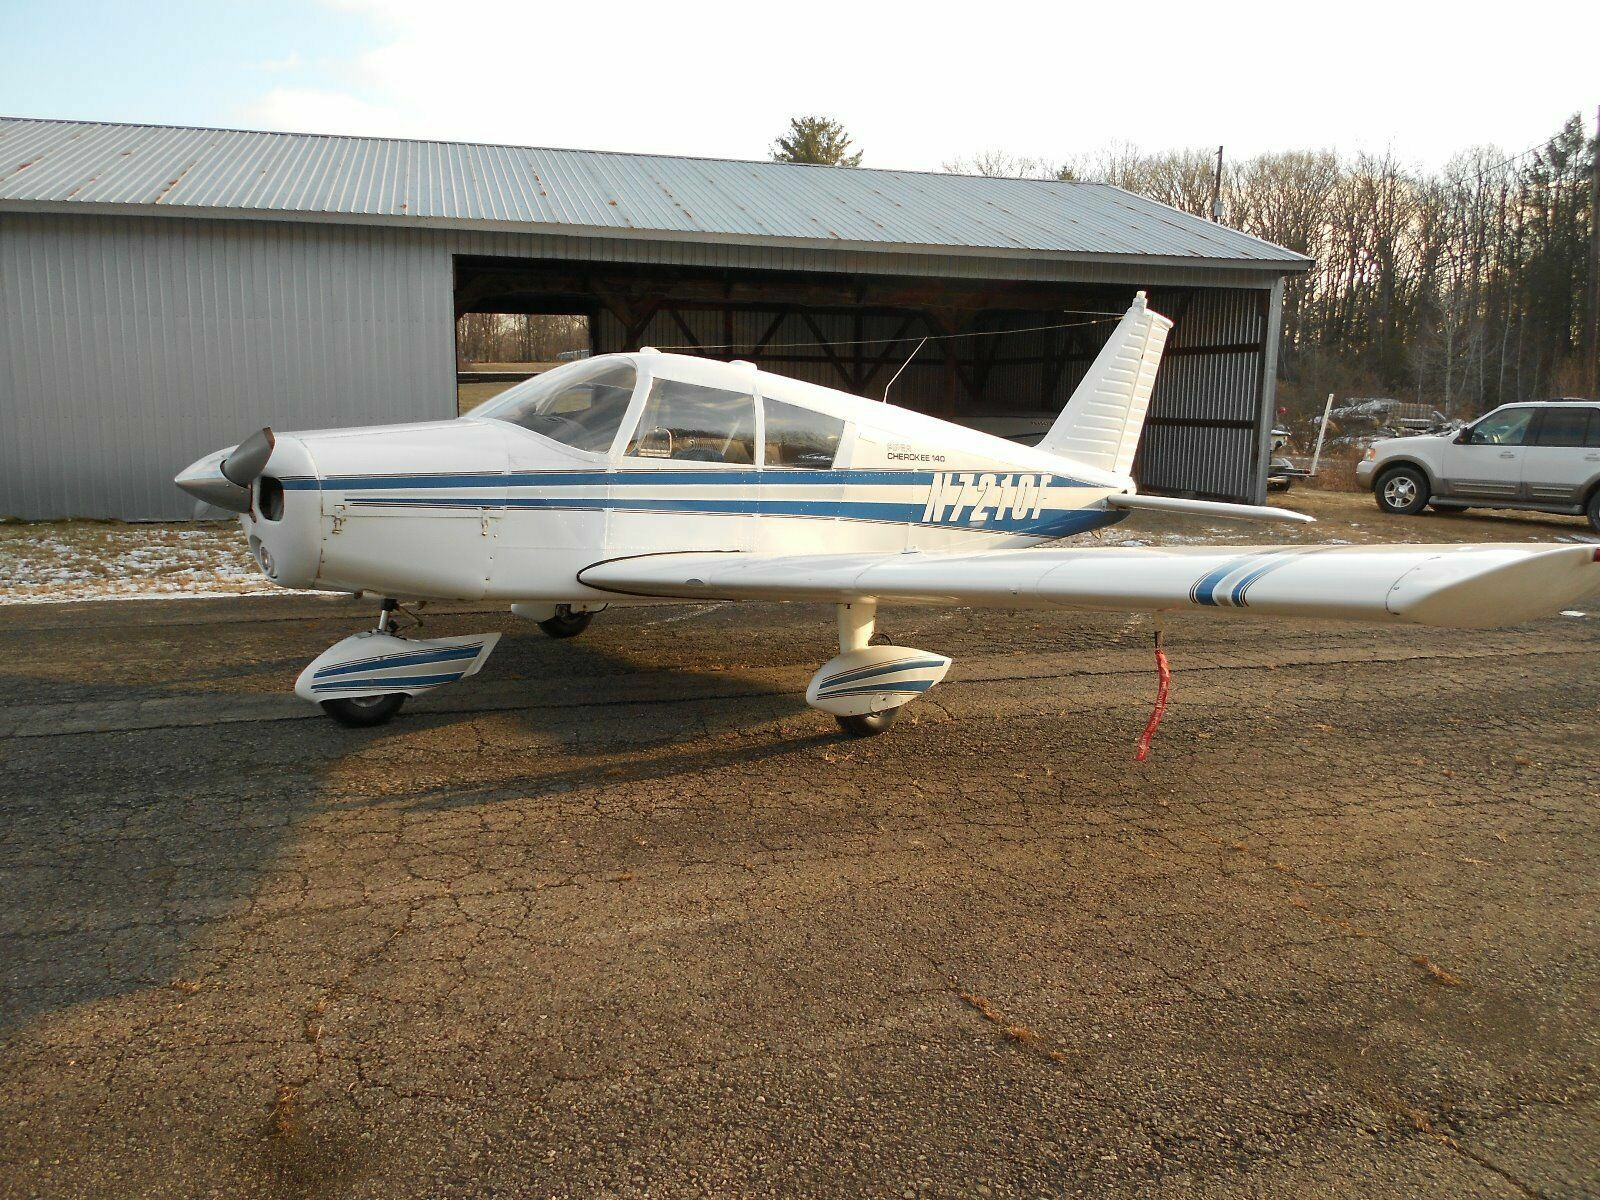 always hangared 1968 Piper PA 28 140 Cherokee aircraft for sale